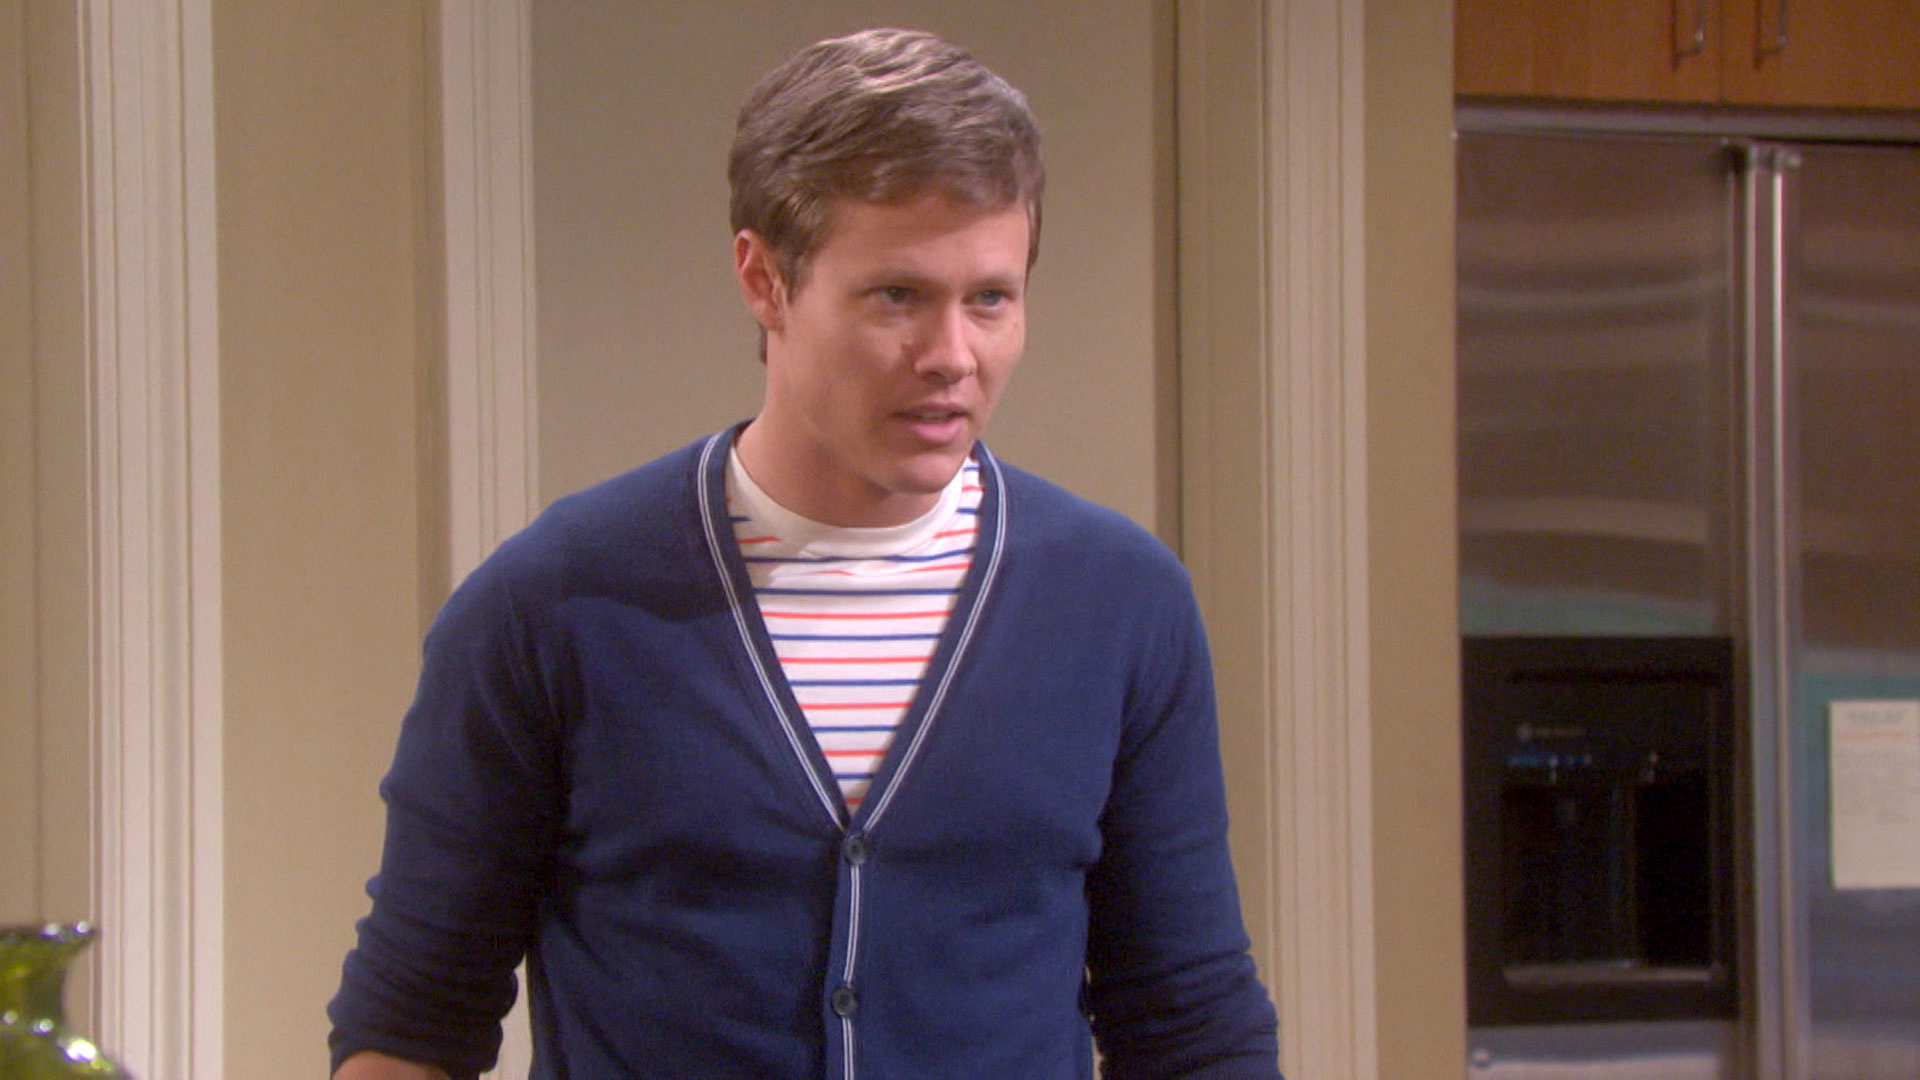 Will is furious when he figures out Sonny's secret.